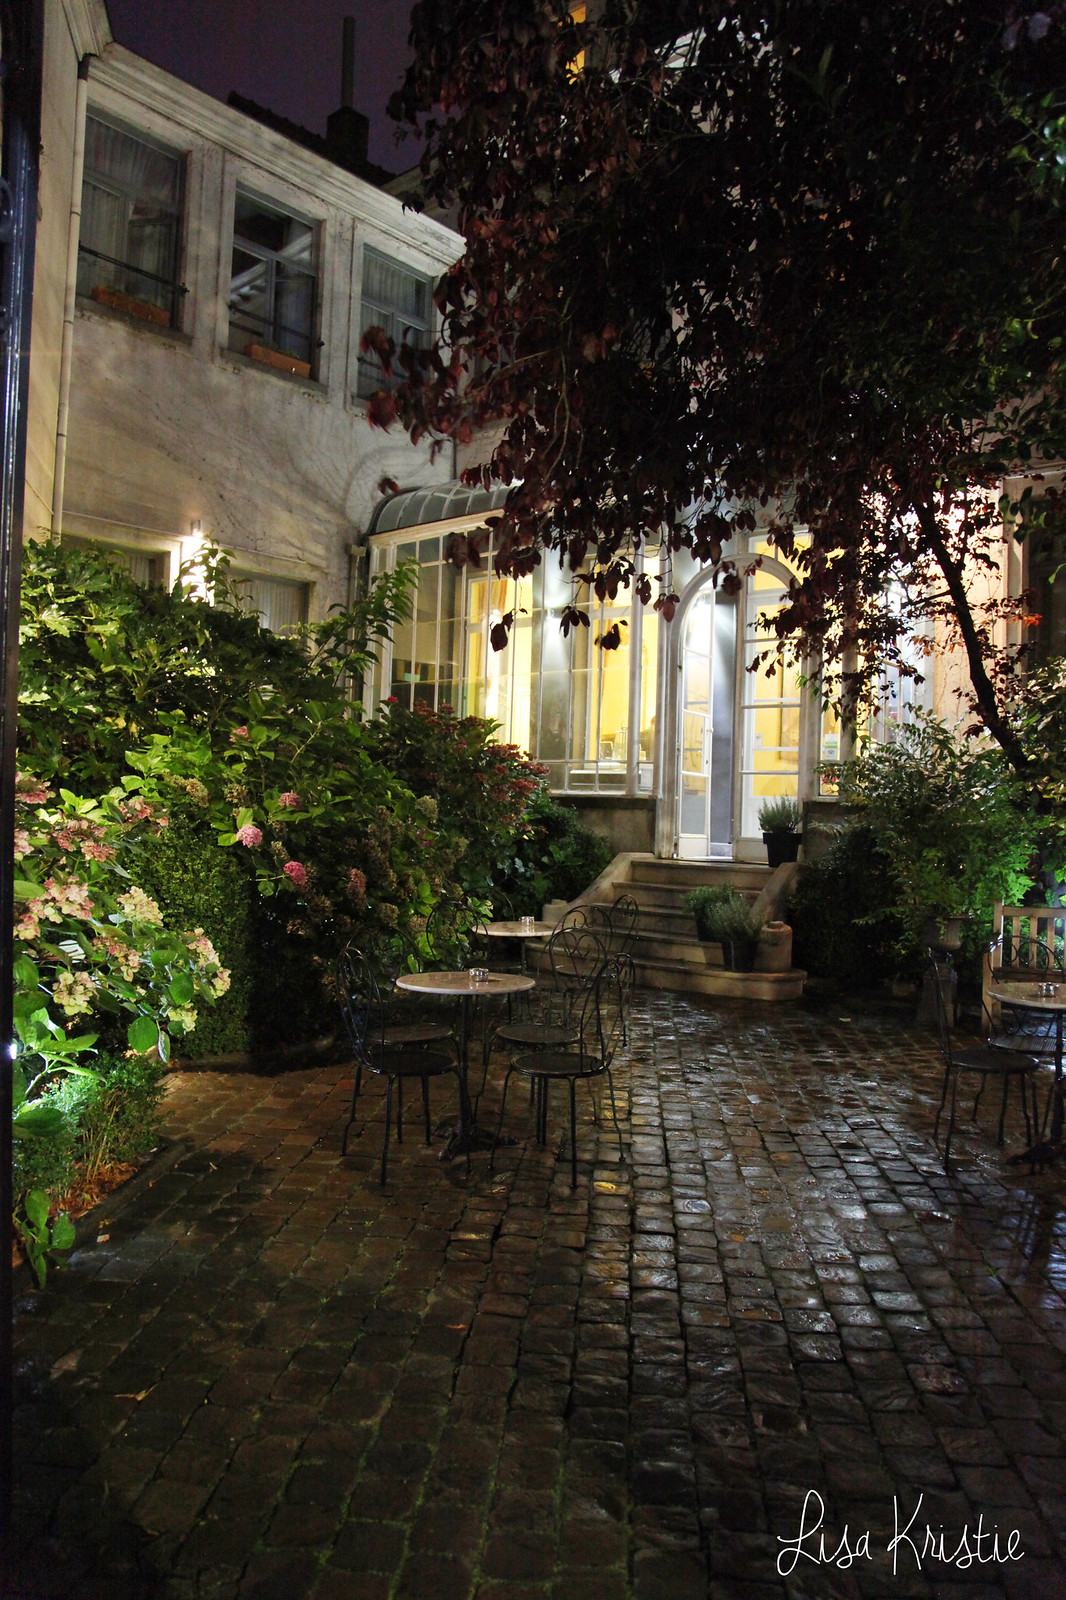 martin's hotels bruges brugge belgium by night rainy entrance doorway patio charming style